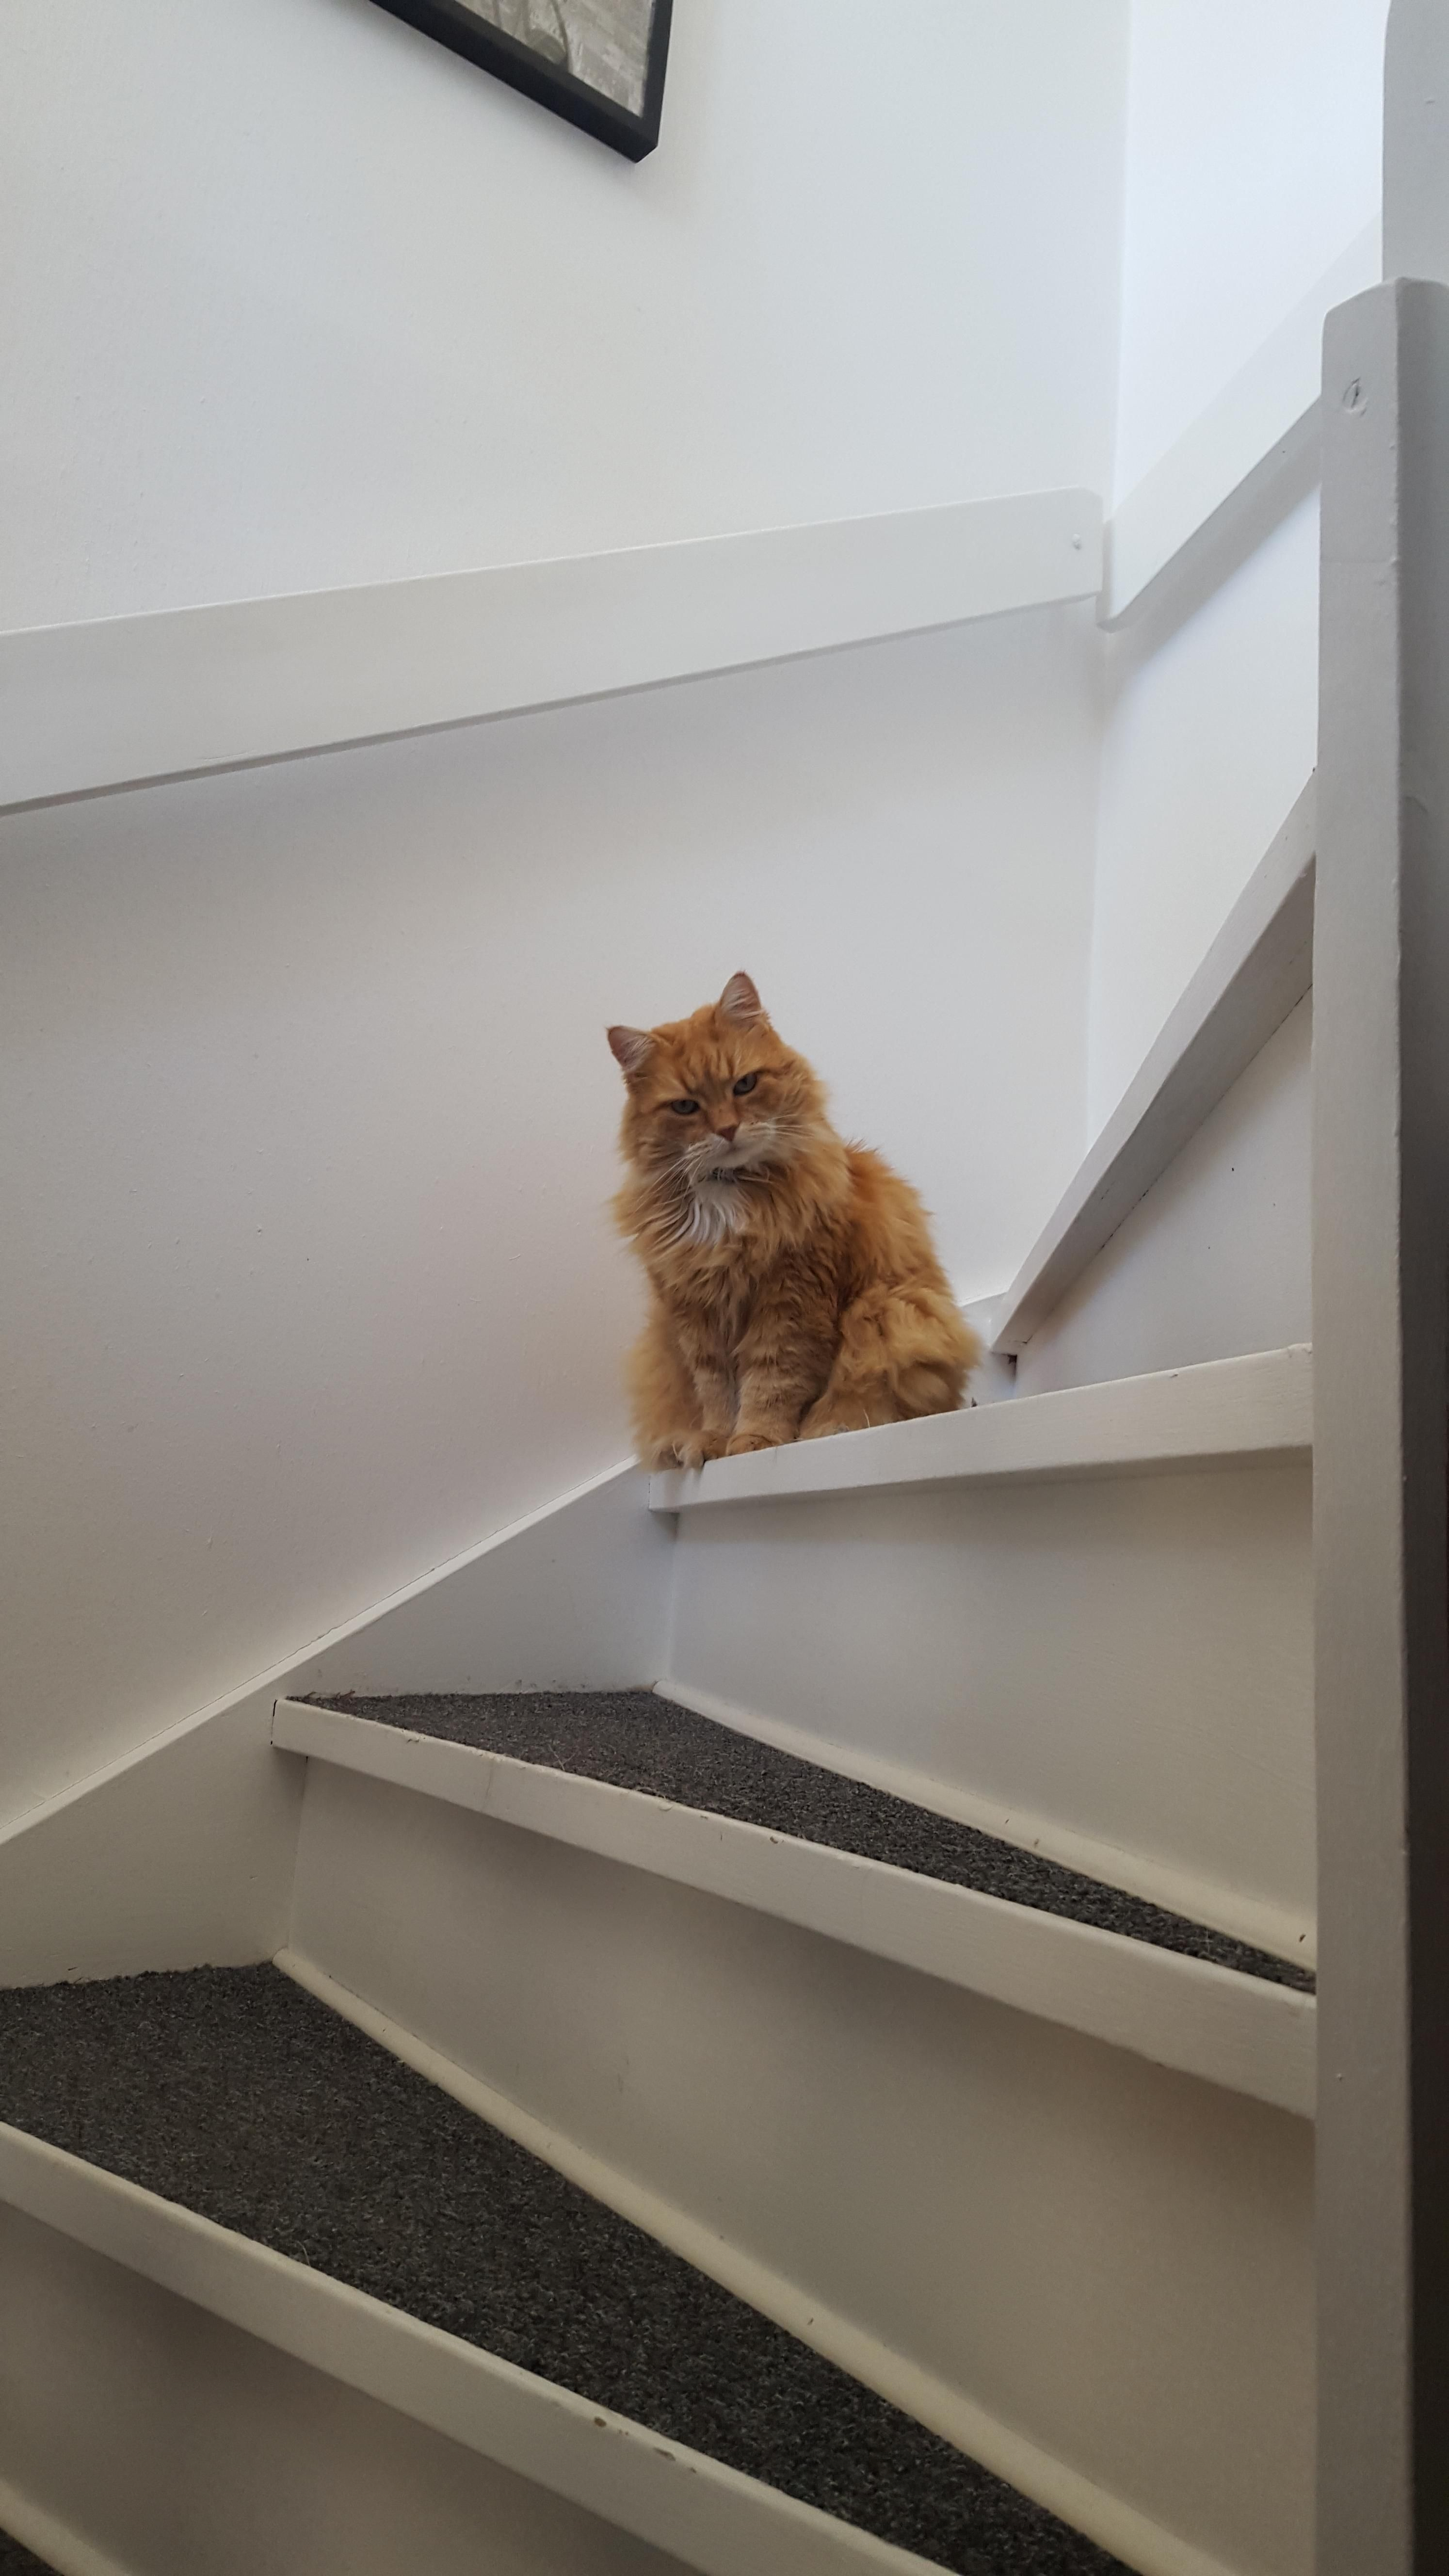 My mom's 12 year old Maine coon/Norwegian forest cat. Say hello to Frasse http://ift.tt/2raaHT7